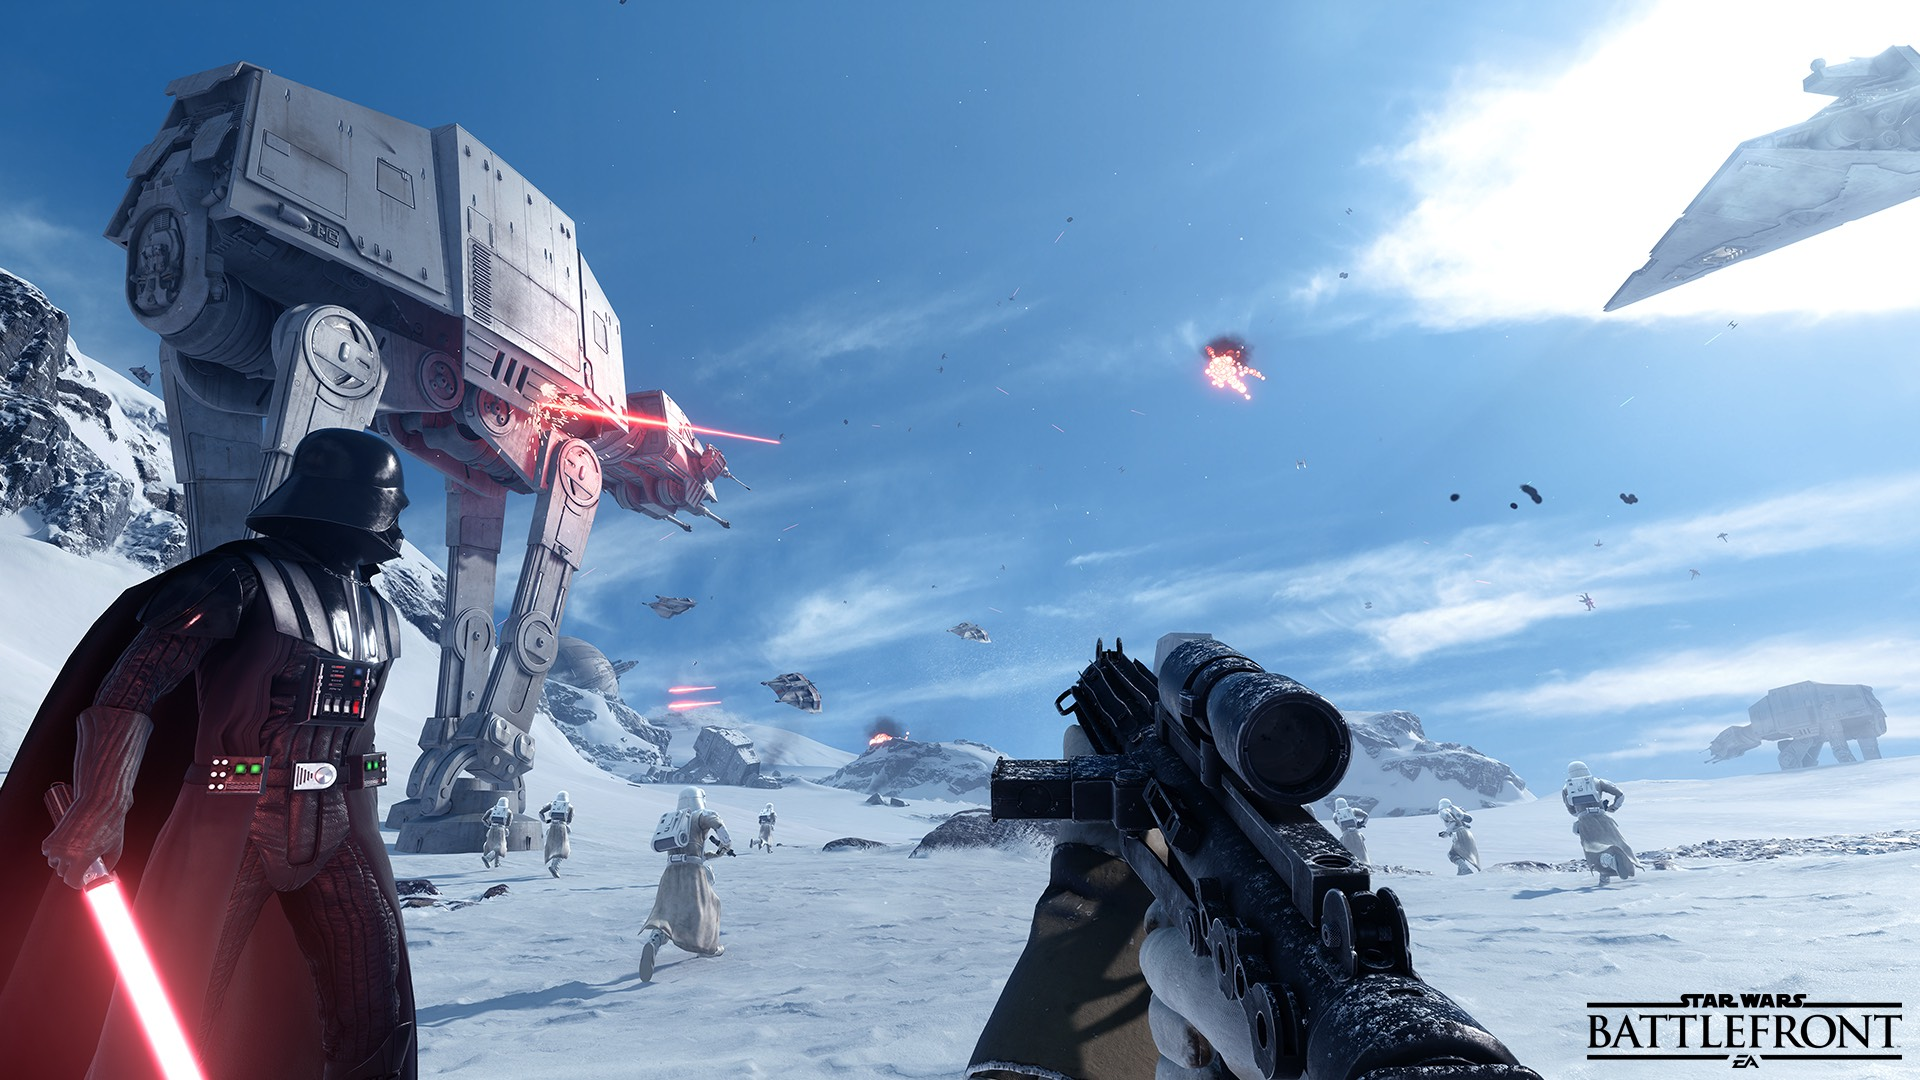 Figures suggest PS4's Battlefront player base is larger than Xbox One and PC's combined